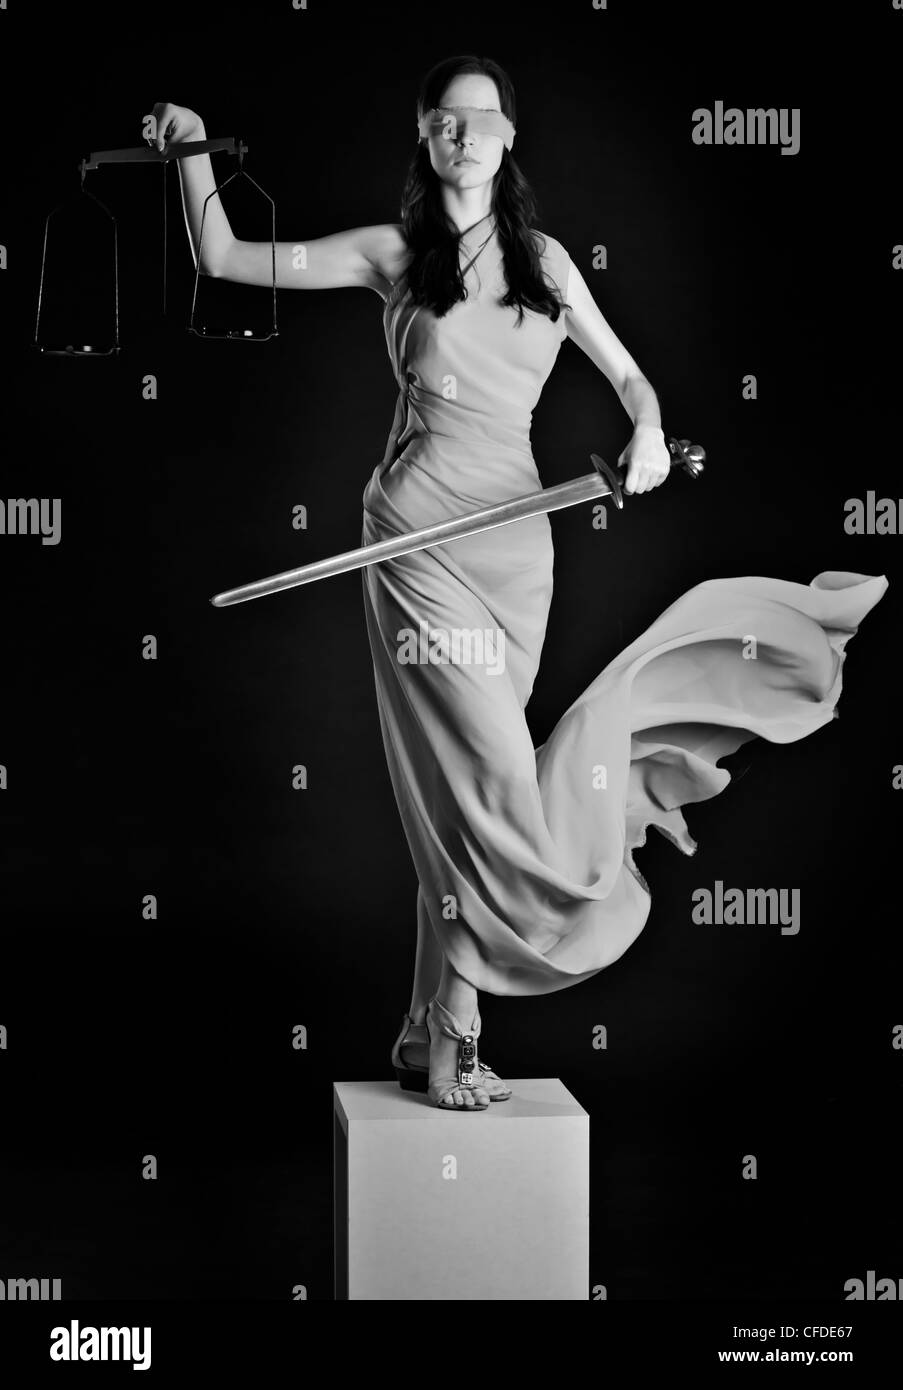 Statue of justice. Blind Woman with scale and sword. - Stock Image